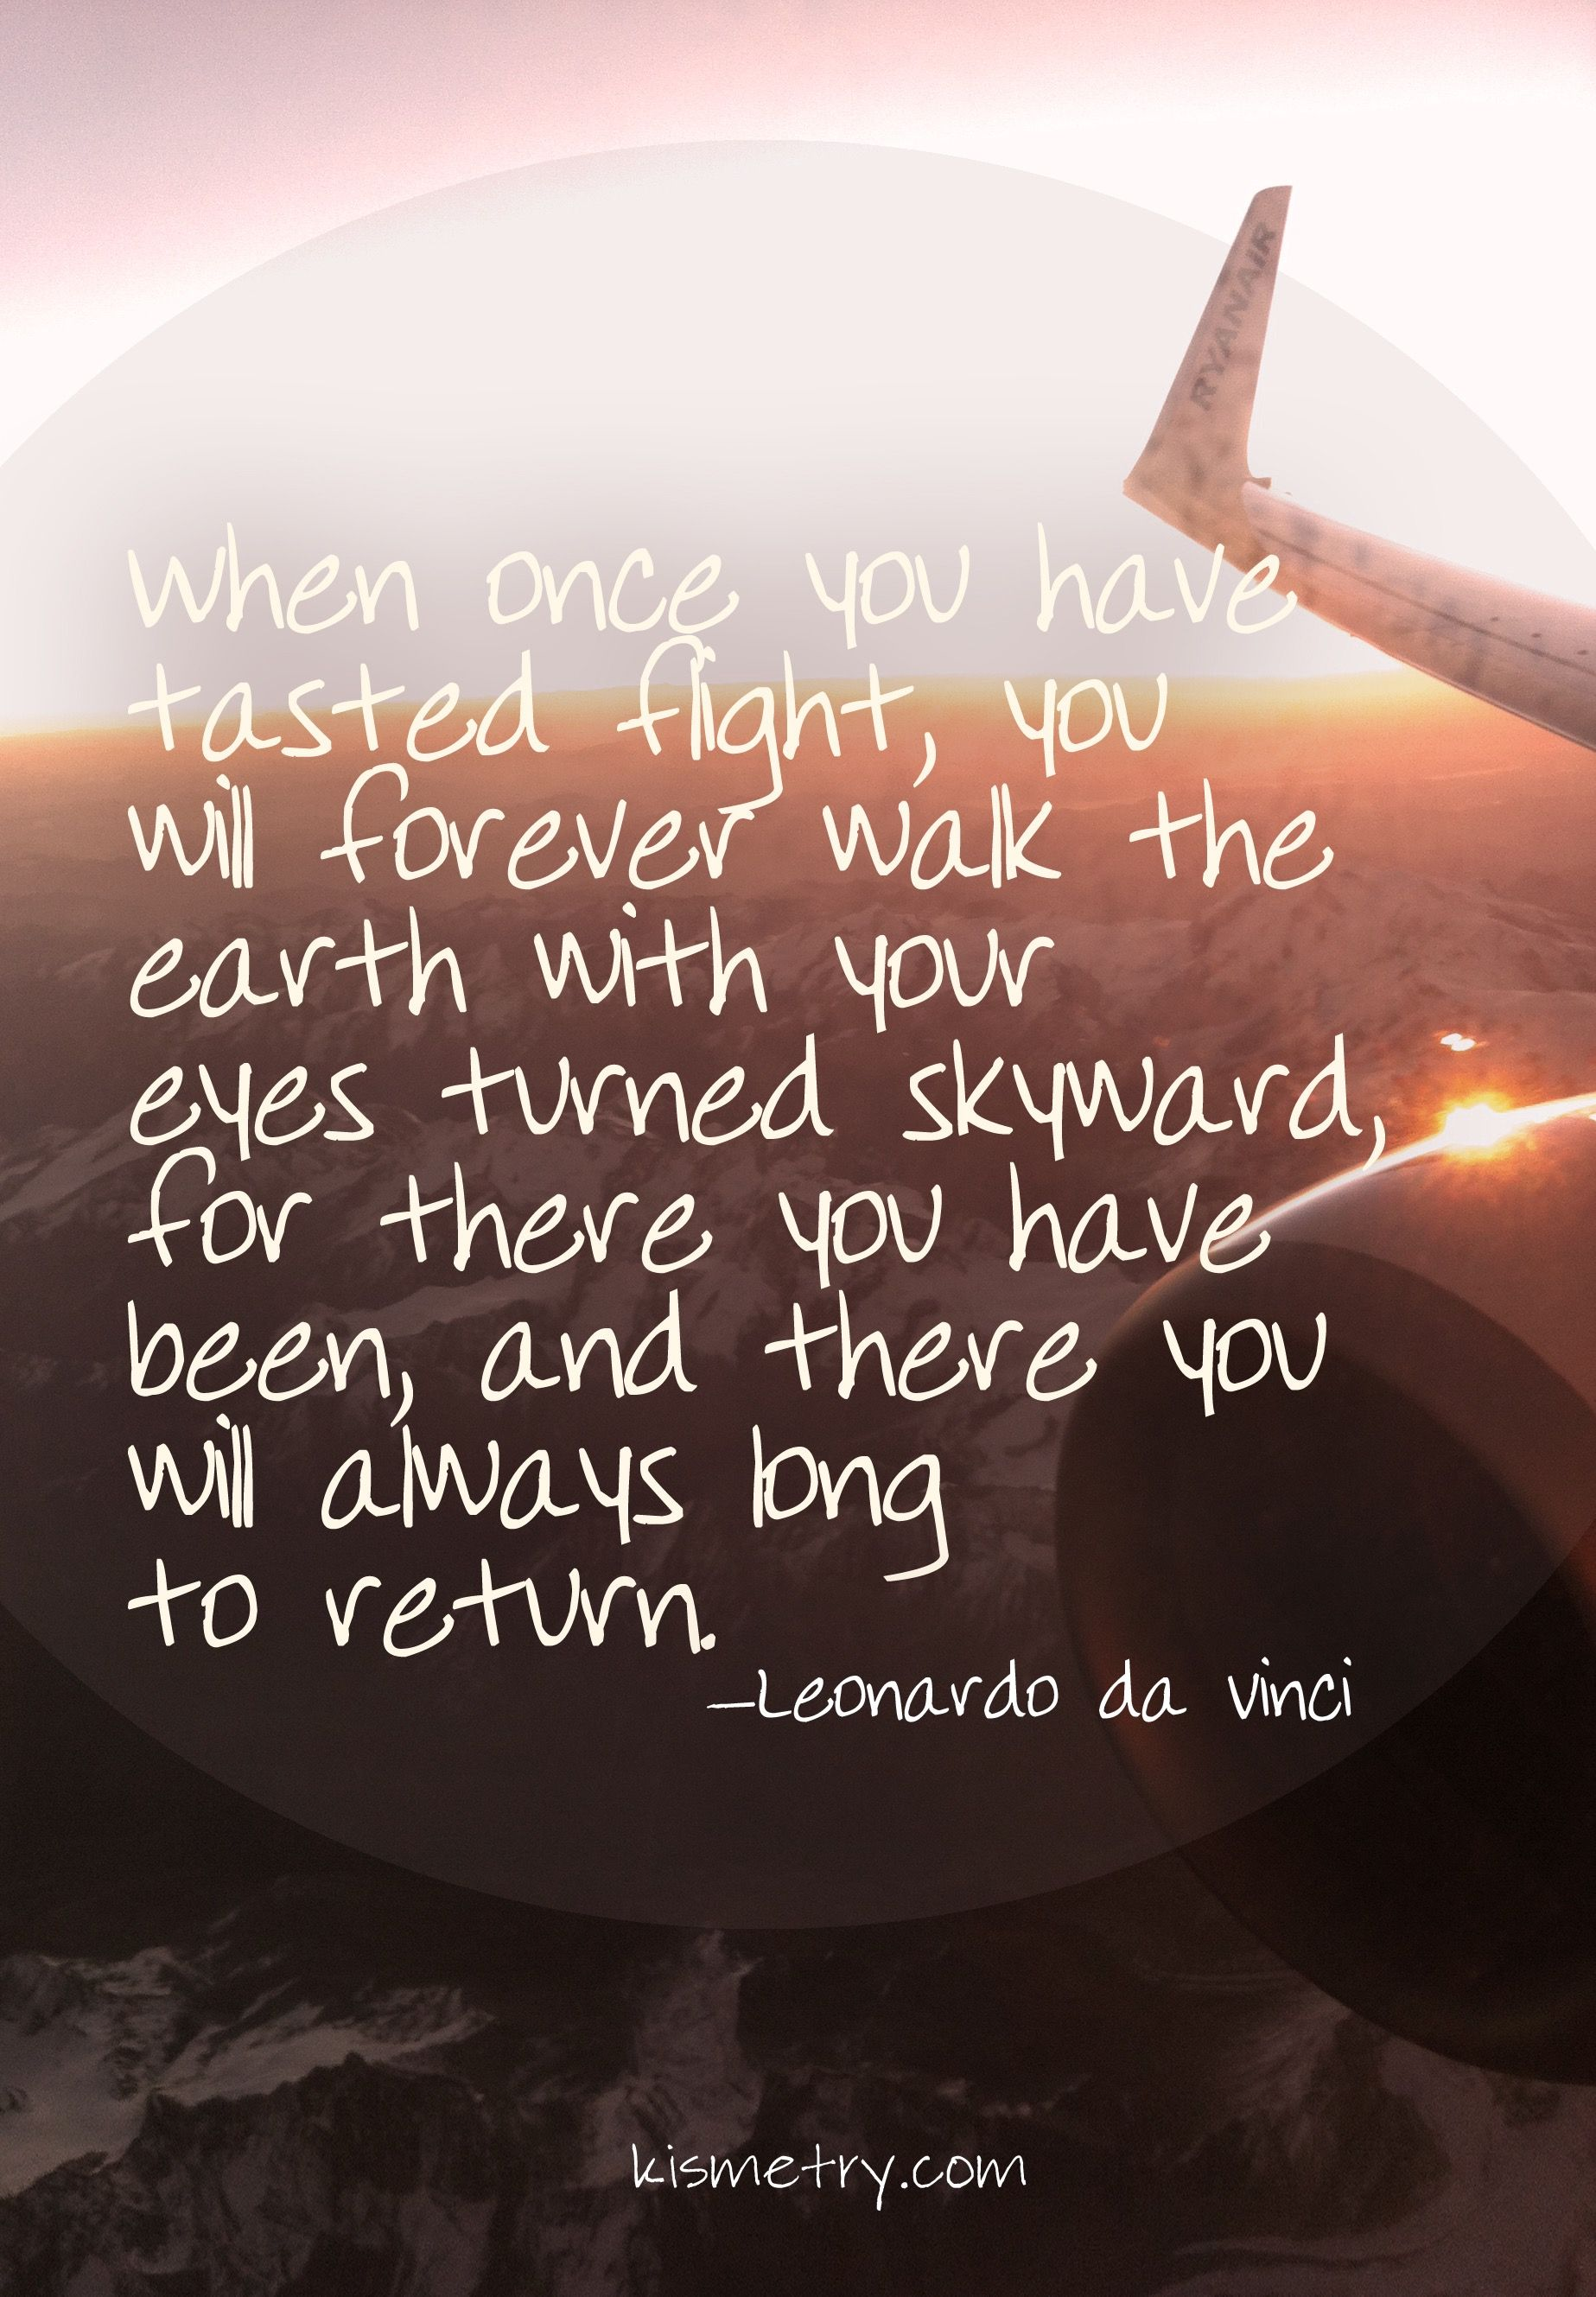 aa3899812b4 Pin by dinesh balraj on Pilot | Airplane quotes, Pilot quotes ...